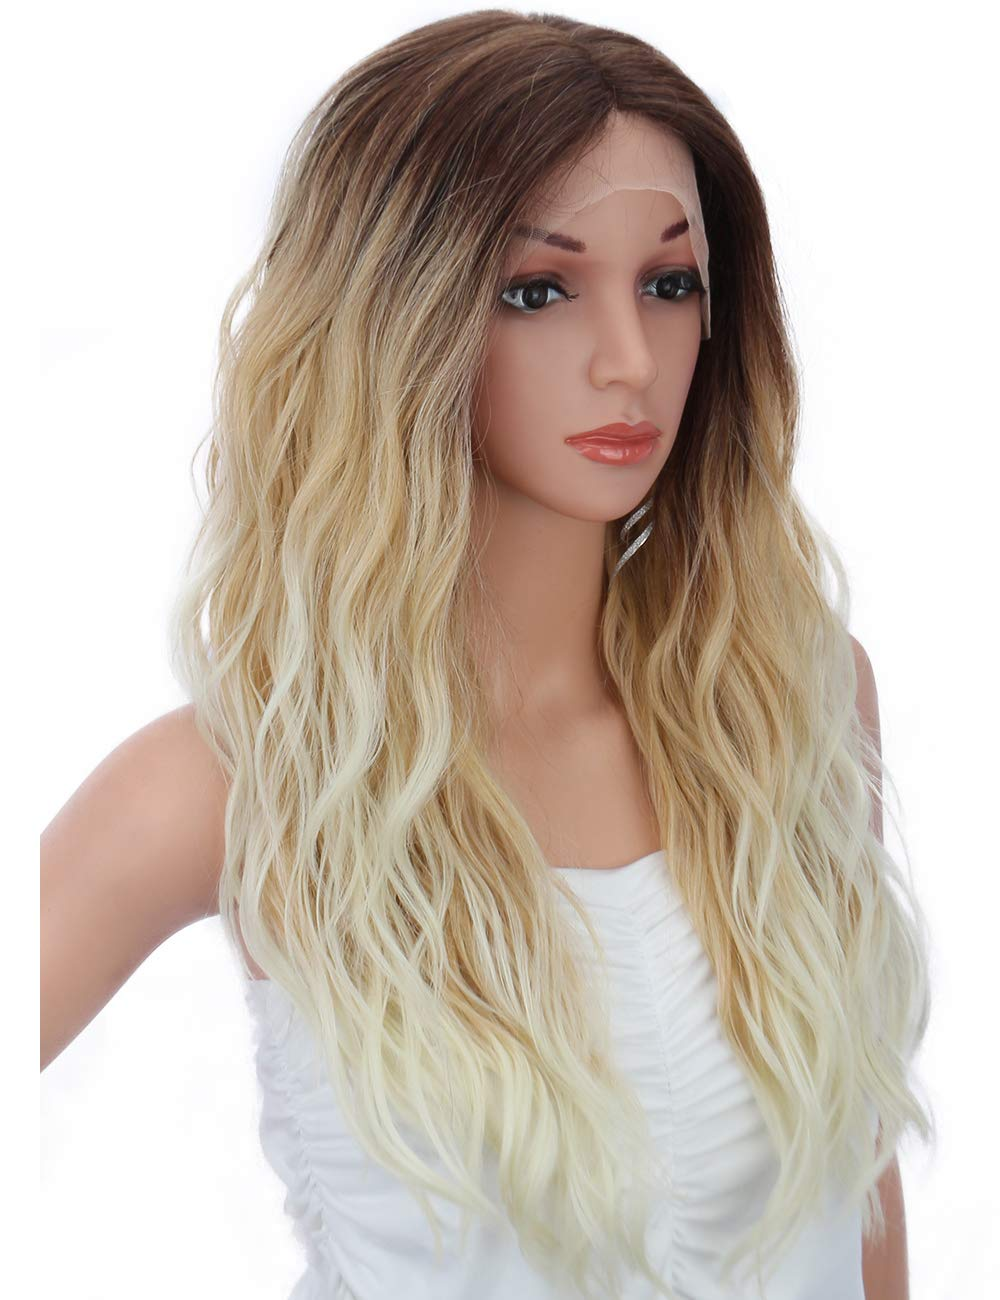 """Kalyss 24"""" Ombre Blonde Lace Front Wigs with Baby Hair for Women Japan-Made Synthetic Heat Resistant Curly Wavy Blonde Wigs with Brown Roots"""